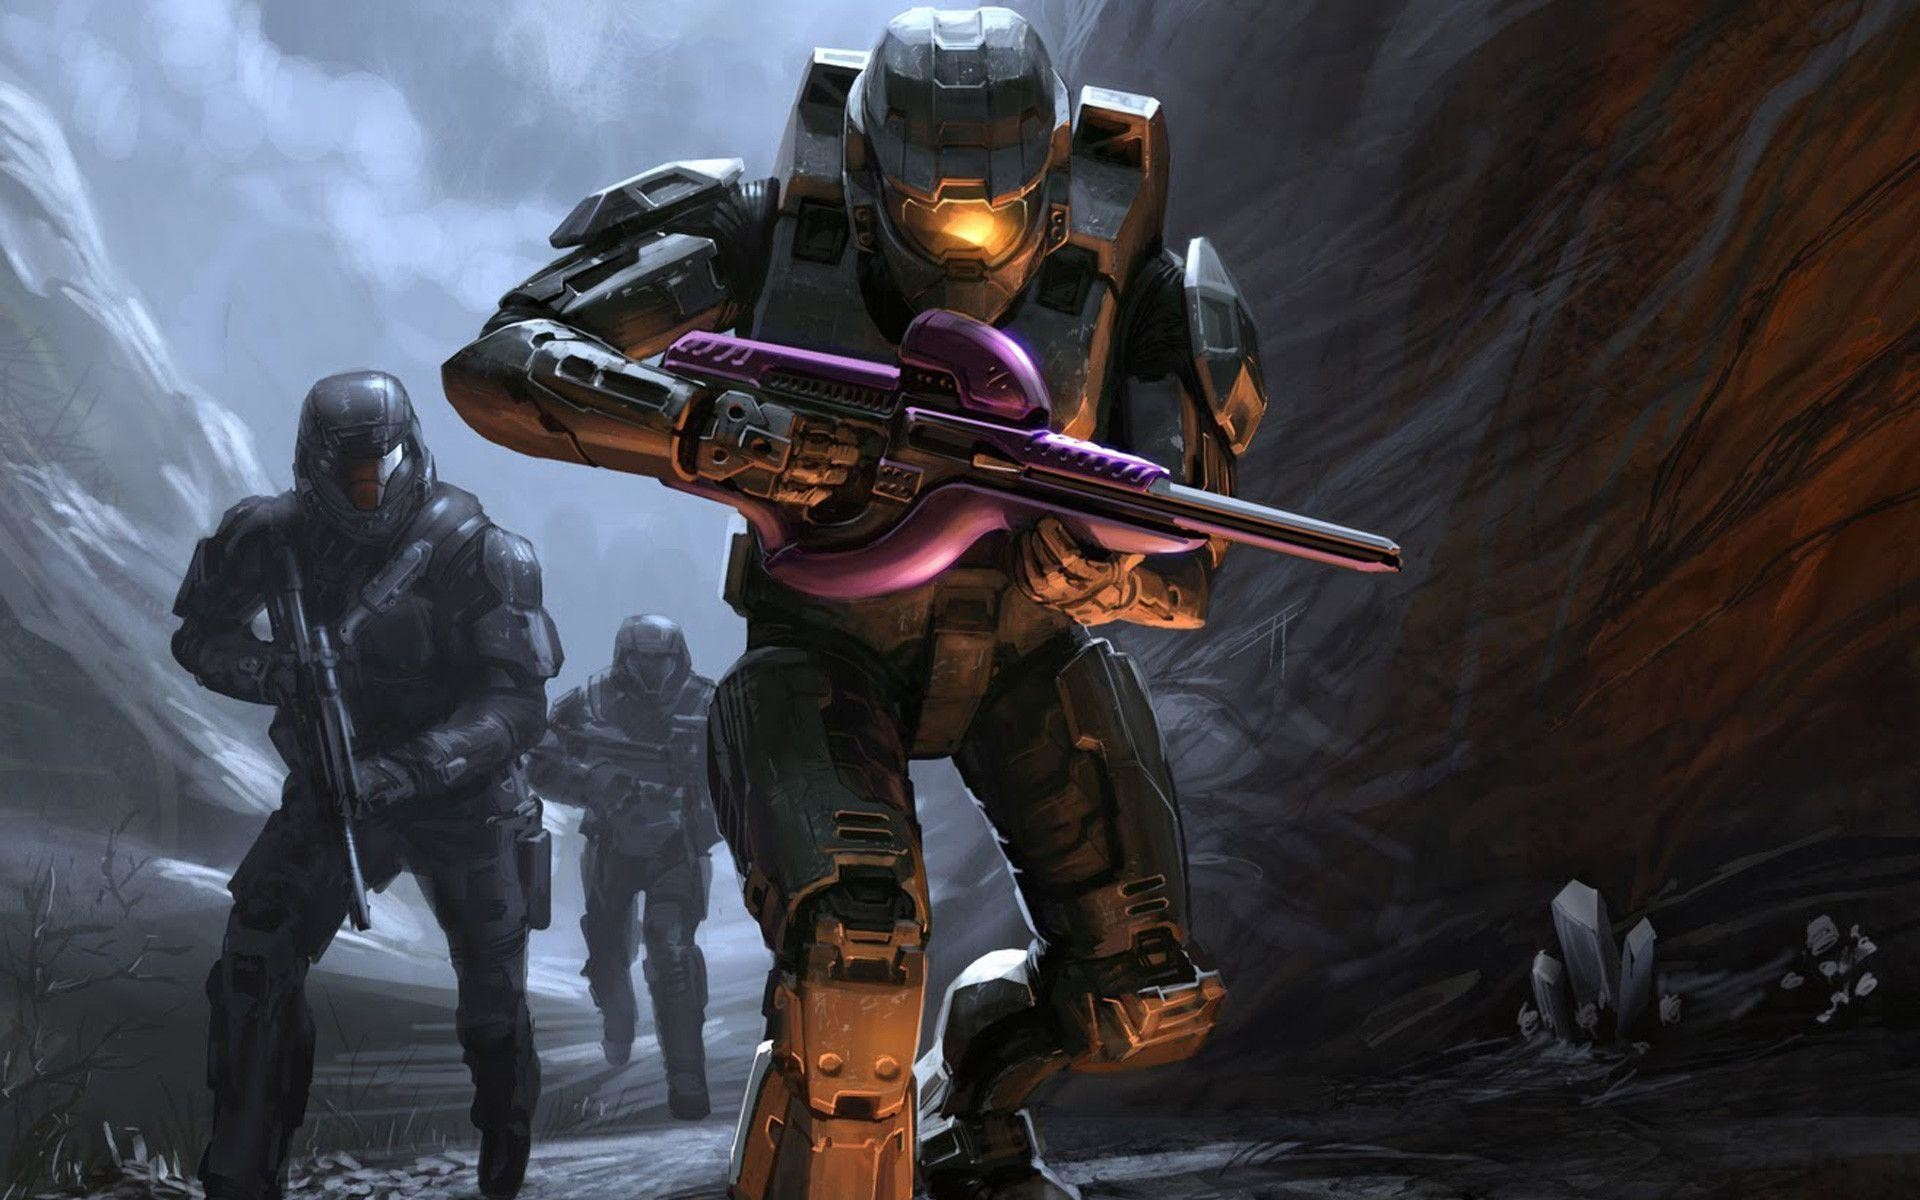 Wallpapers For > Halo 3 Wallpaper Master Chief And Arbiter